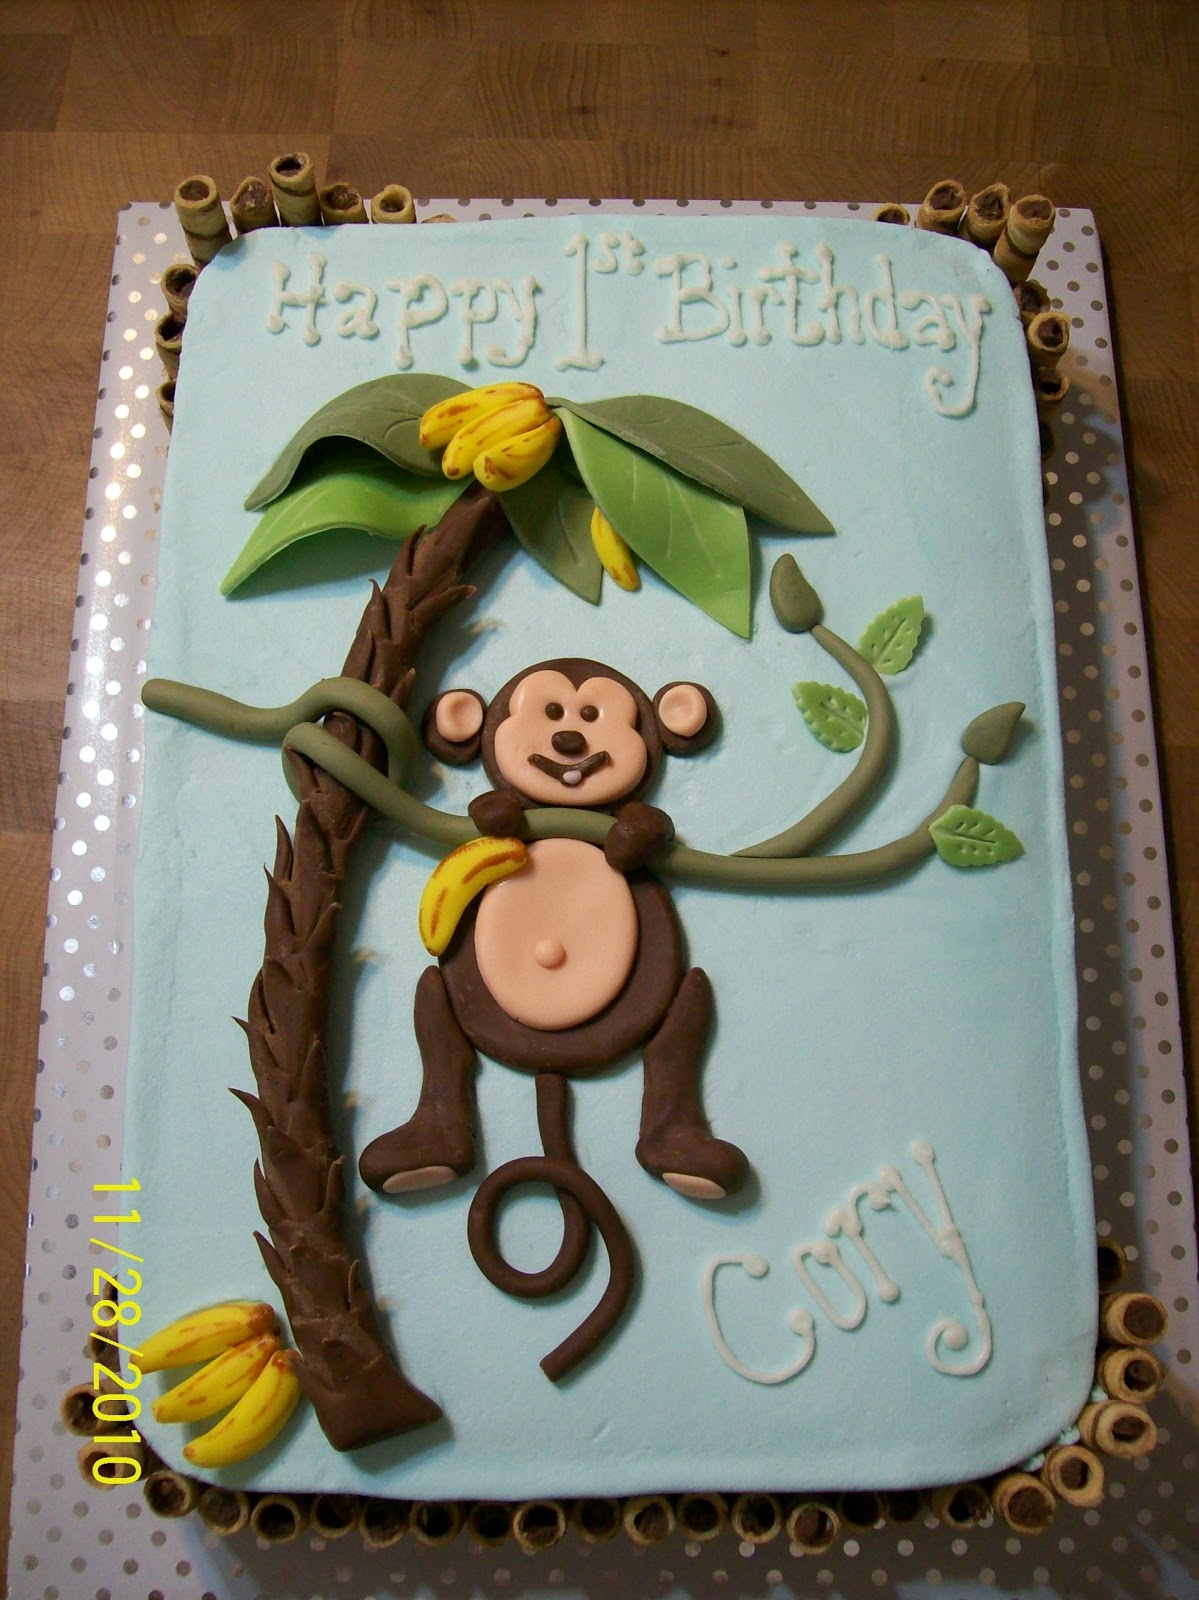 Cakes By Chris: Monkey Cake